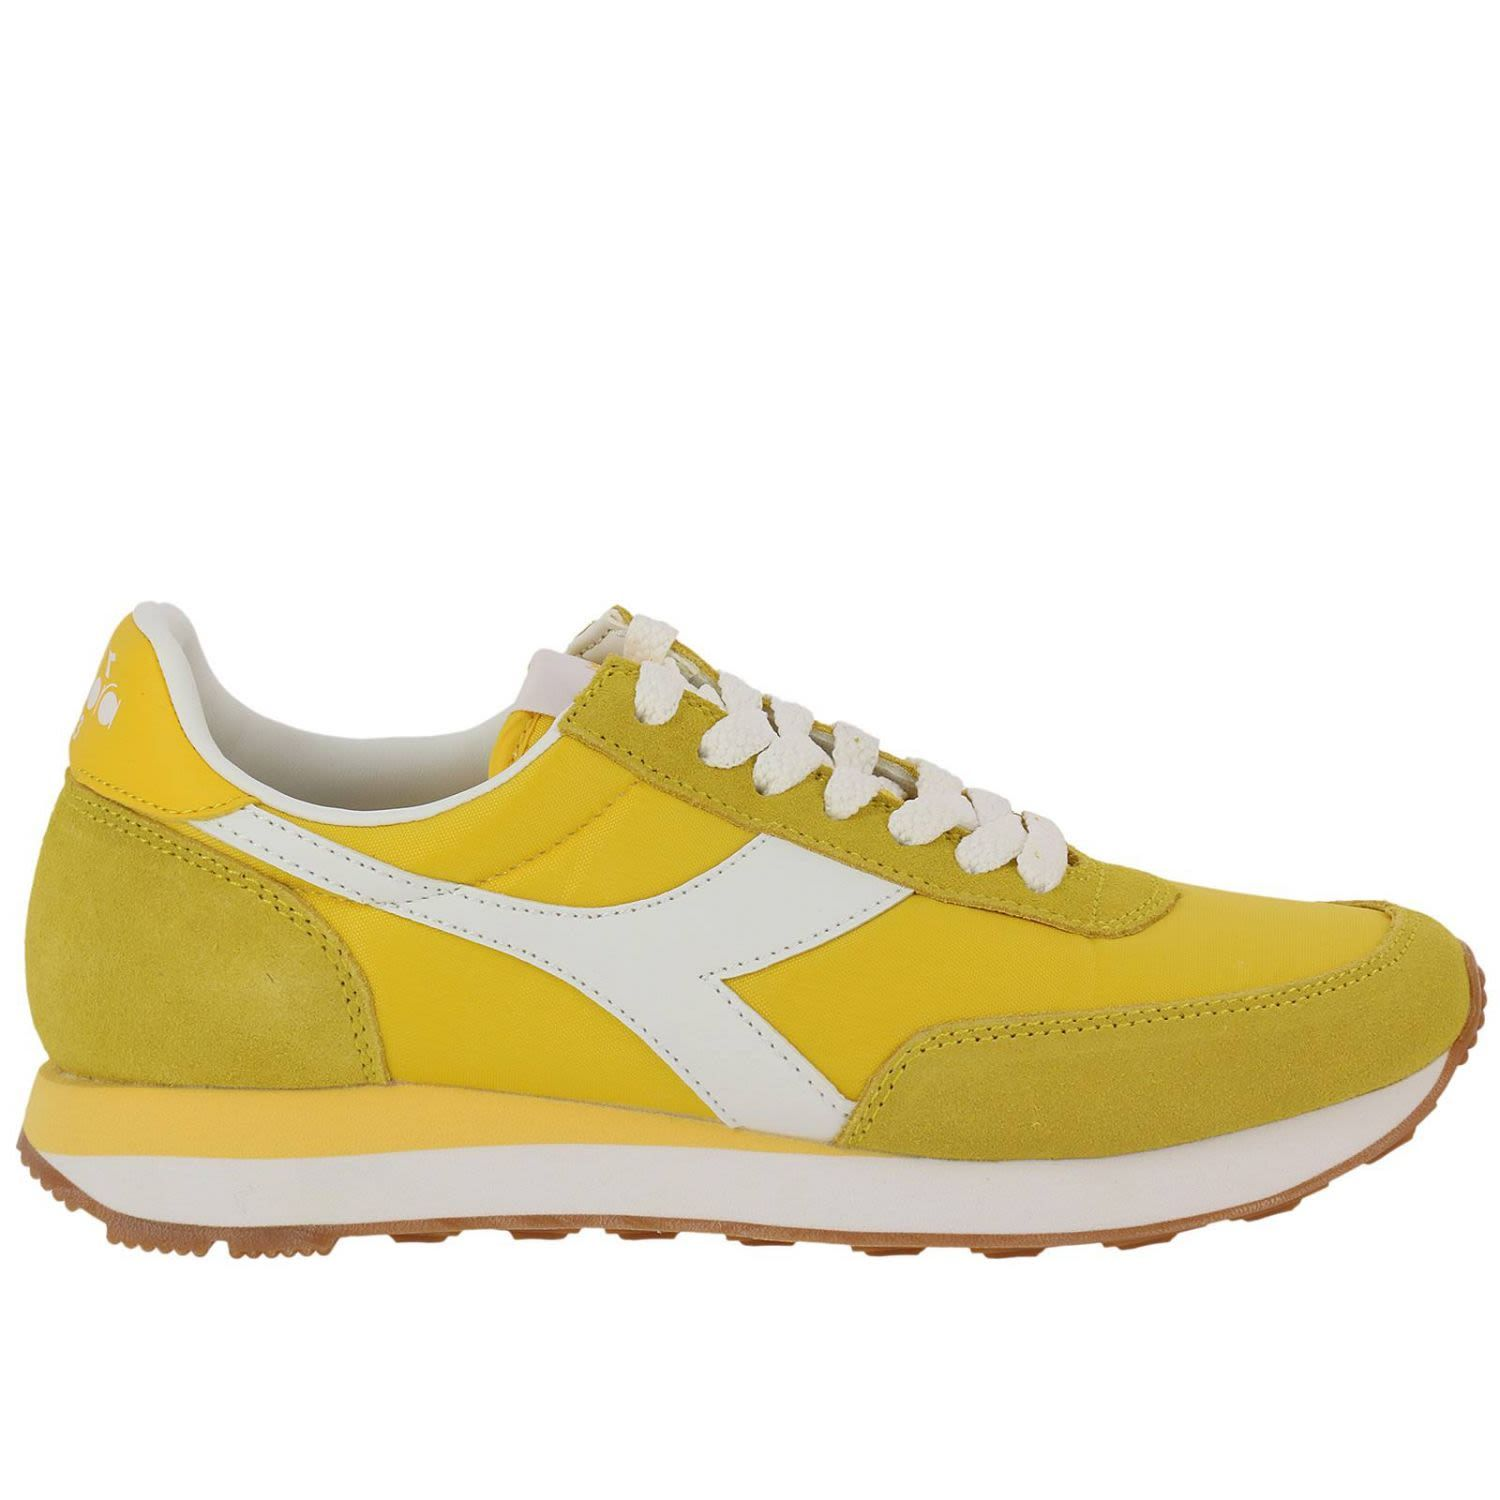 afb3472c DIADORA SNEAKERS SHOES WOMEN DIADORA HERITAGE. #diadora #shoes ...